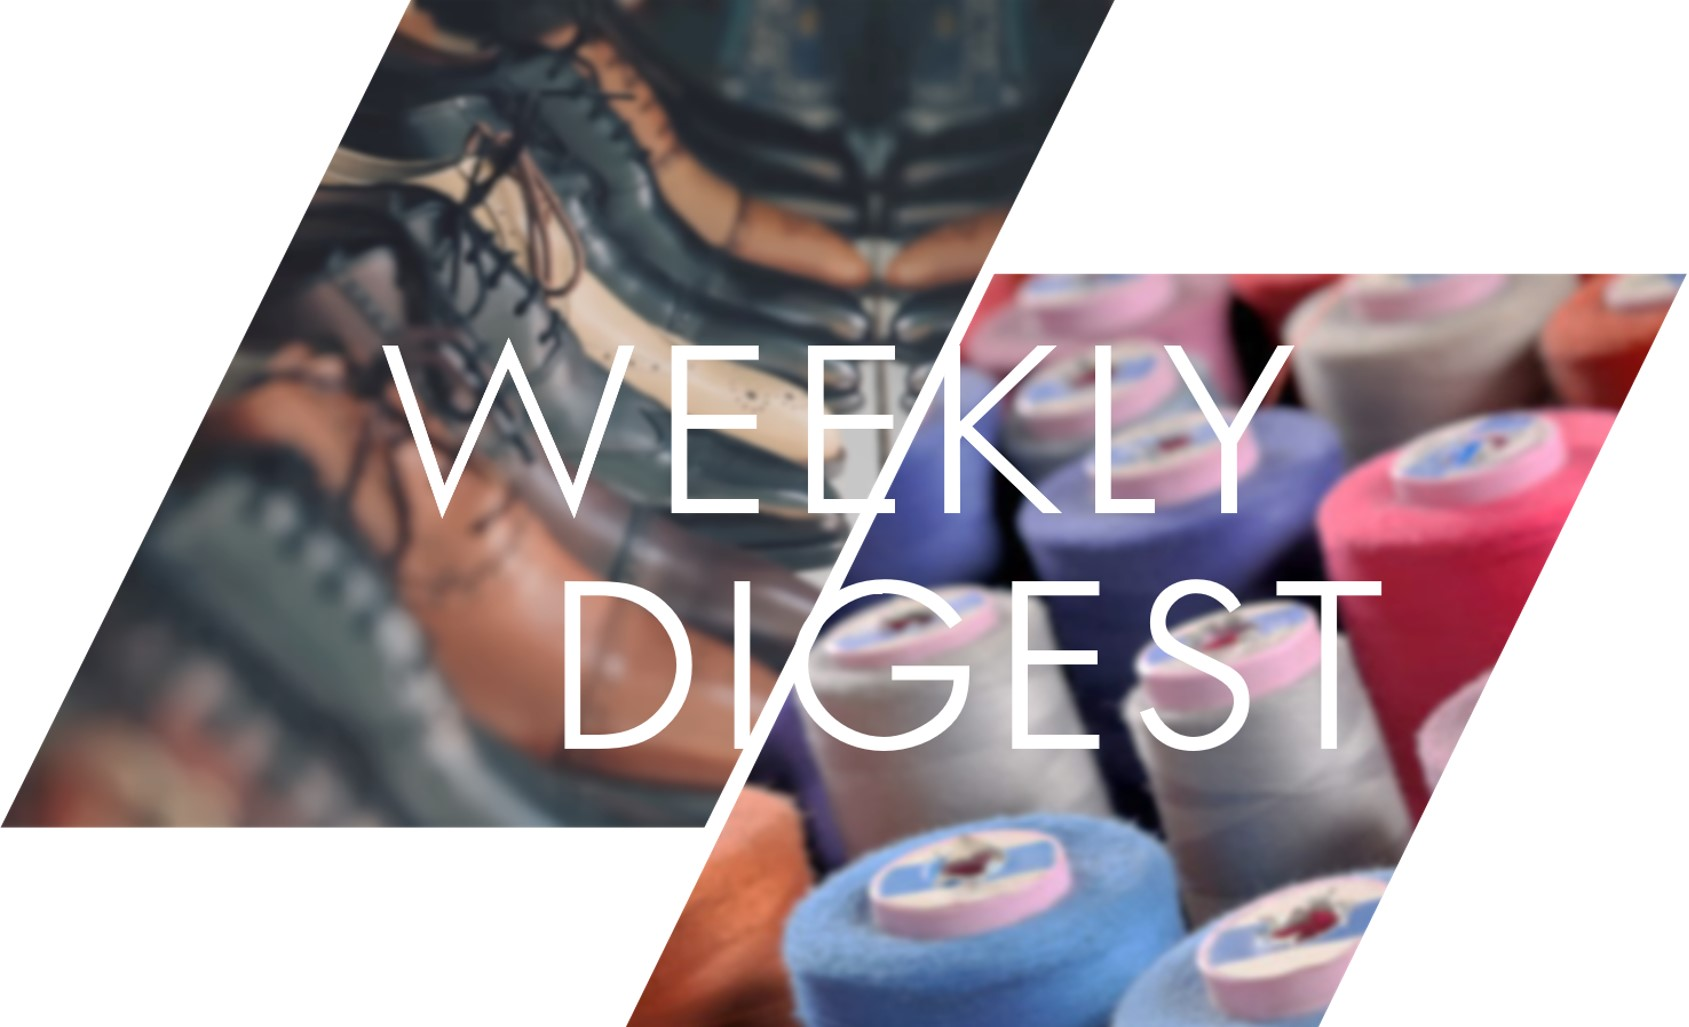 Weekly Digest | Issue #1